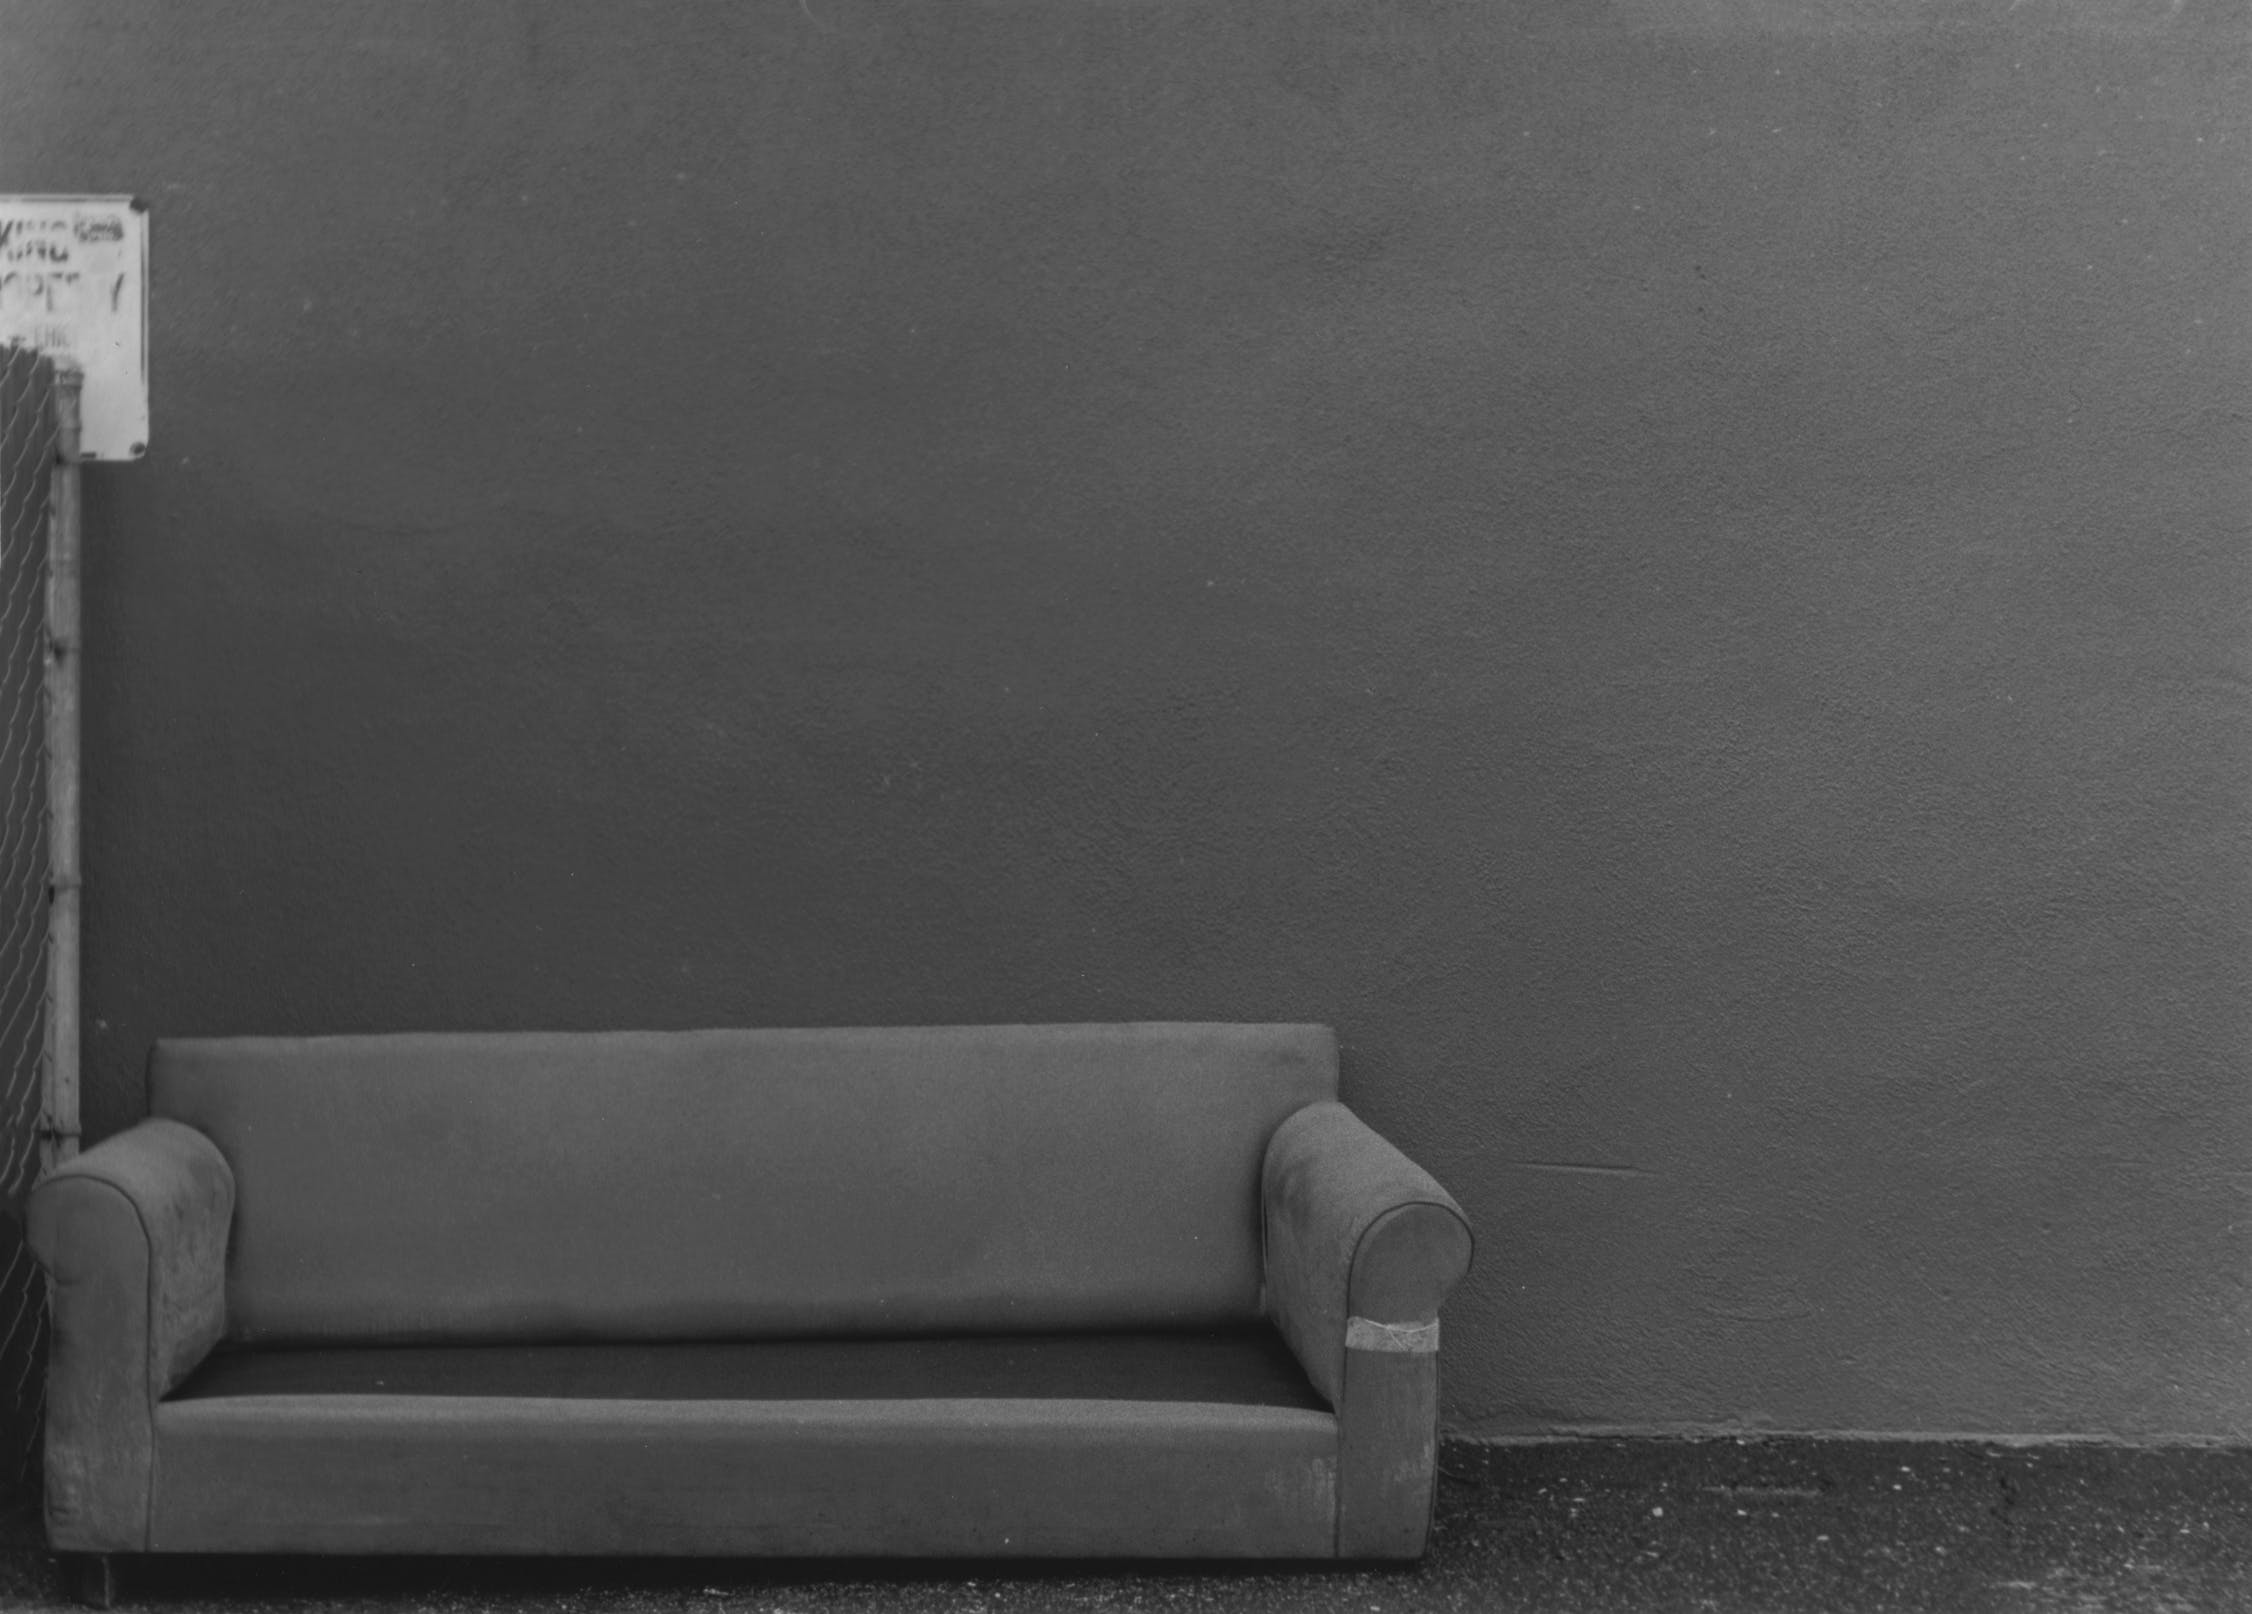 Free stock photo of alley, black and white, couch, film